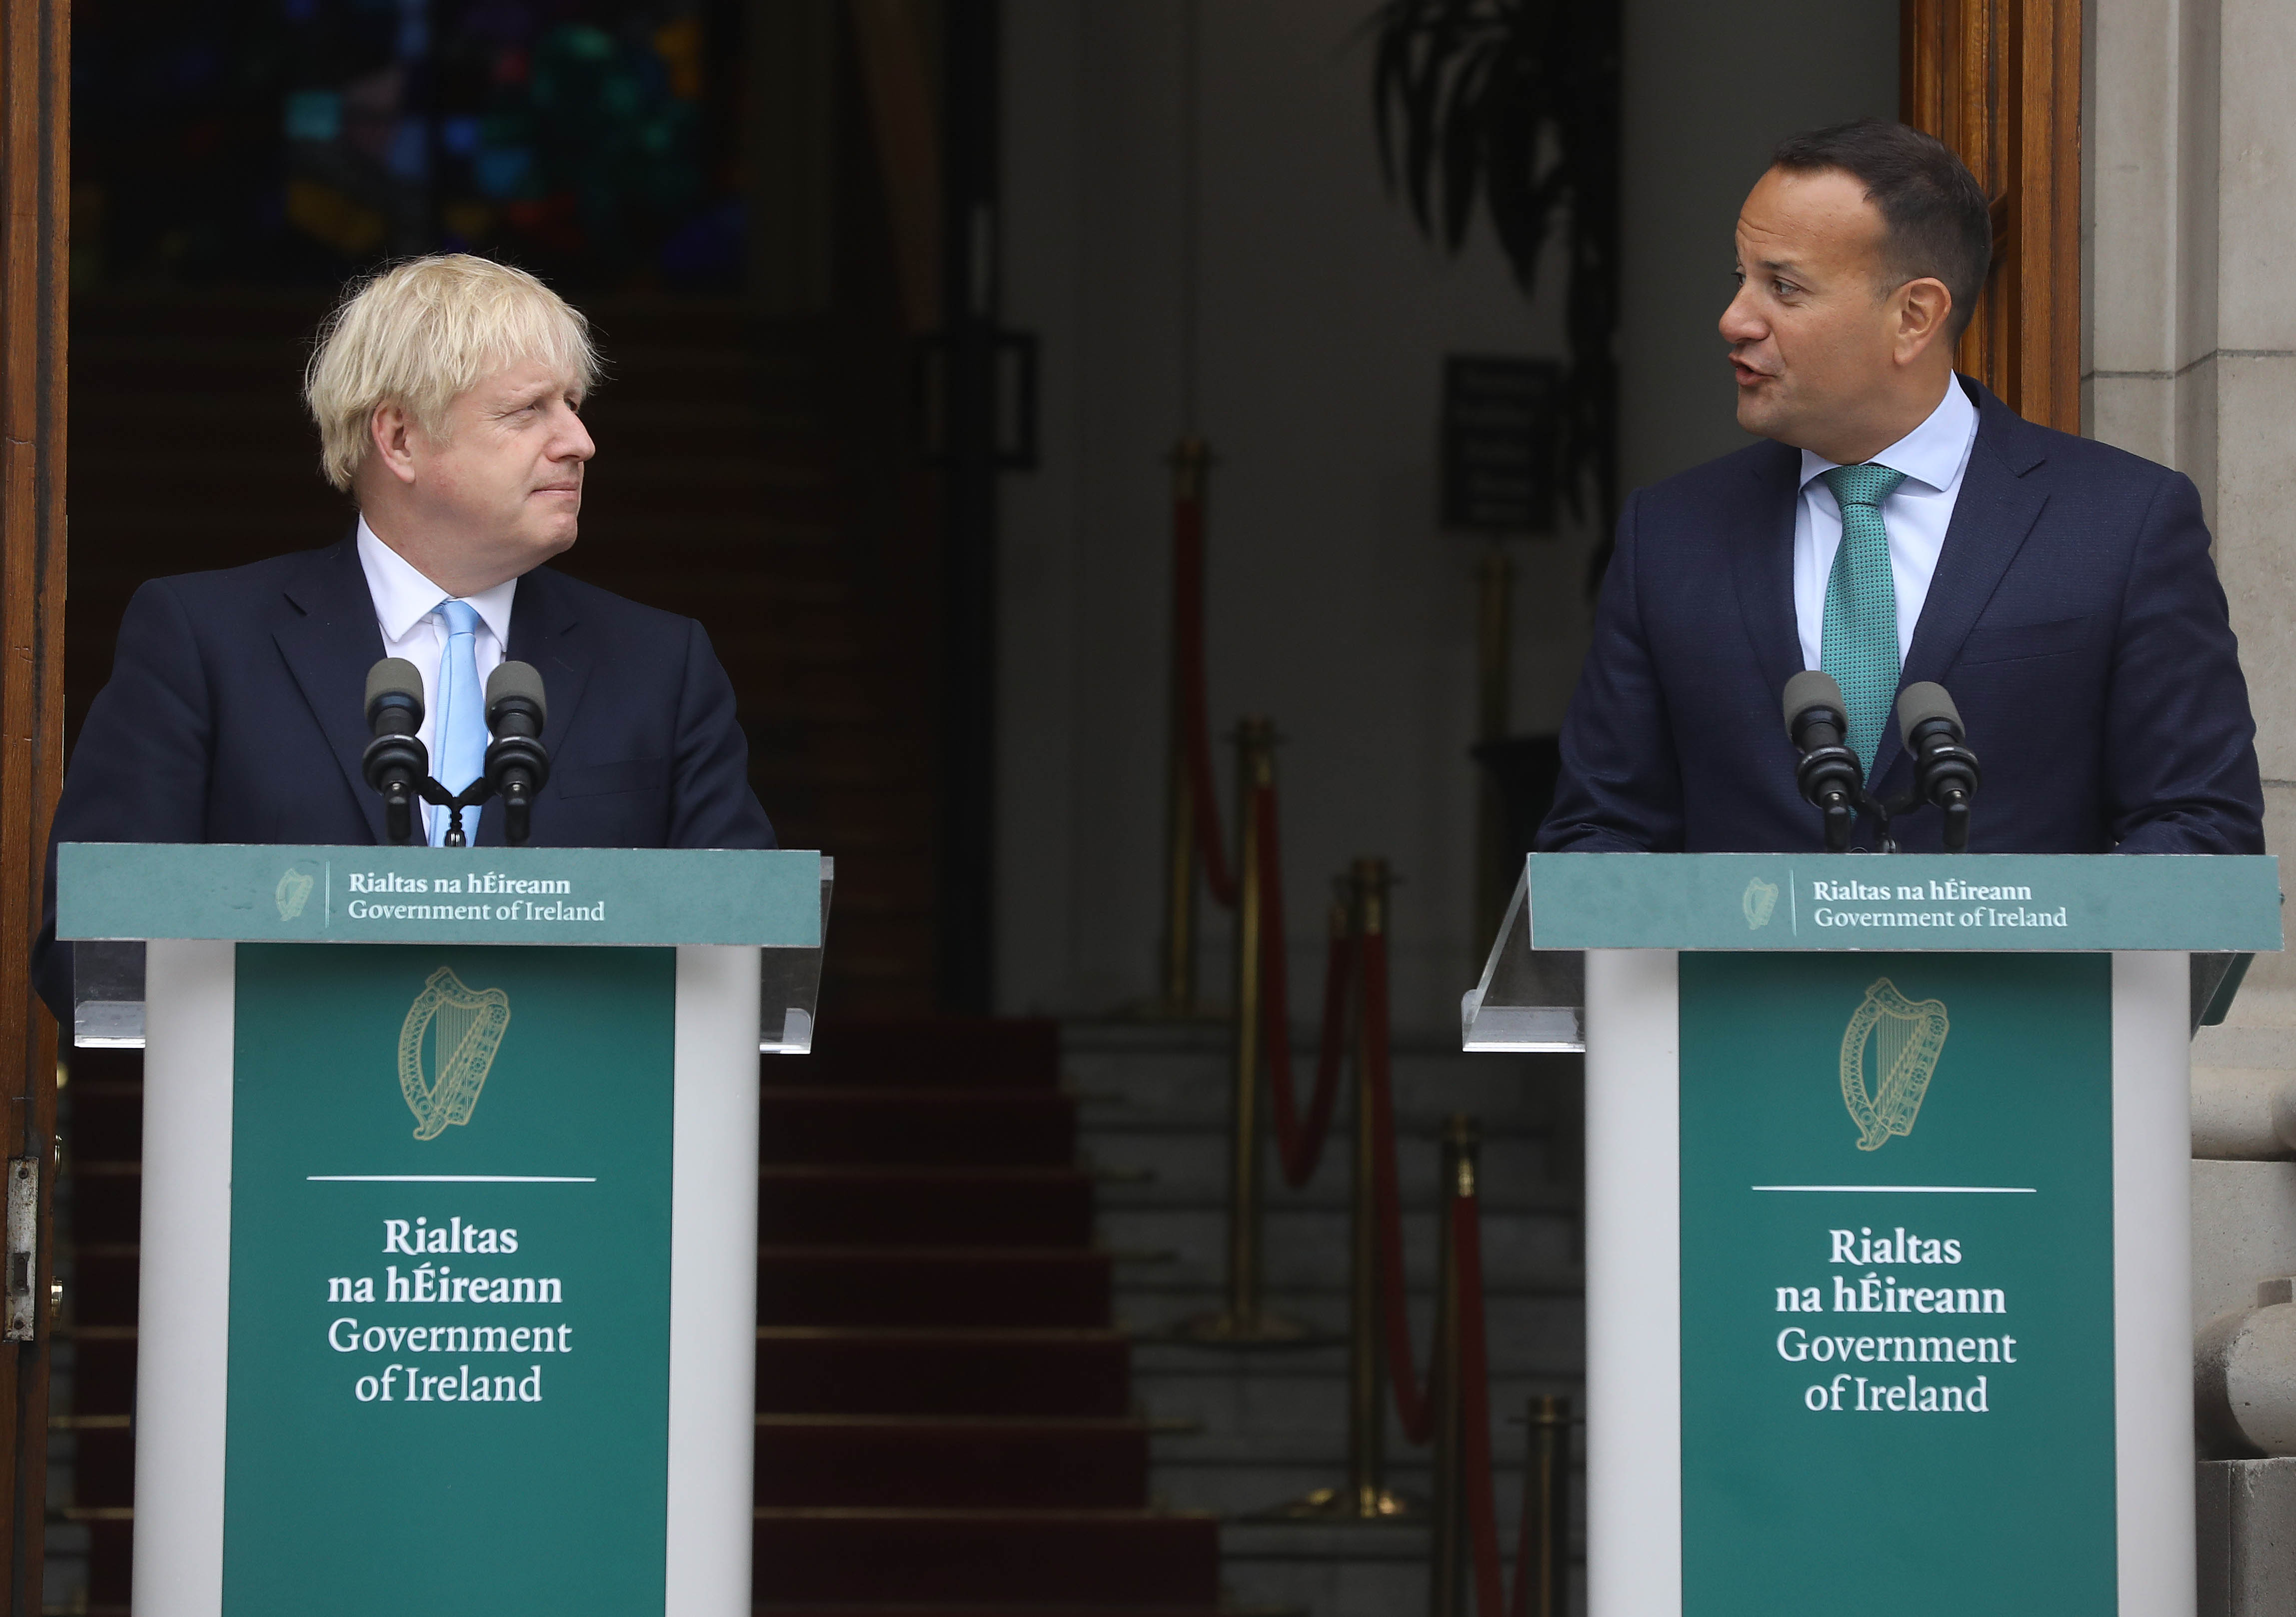 Irish Prime Minister Leo Varadkar speaking with Britain's Prime Minister Boris Johnson earlier in a a joint press conference.